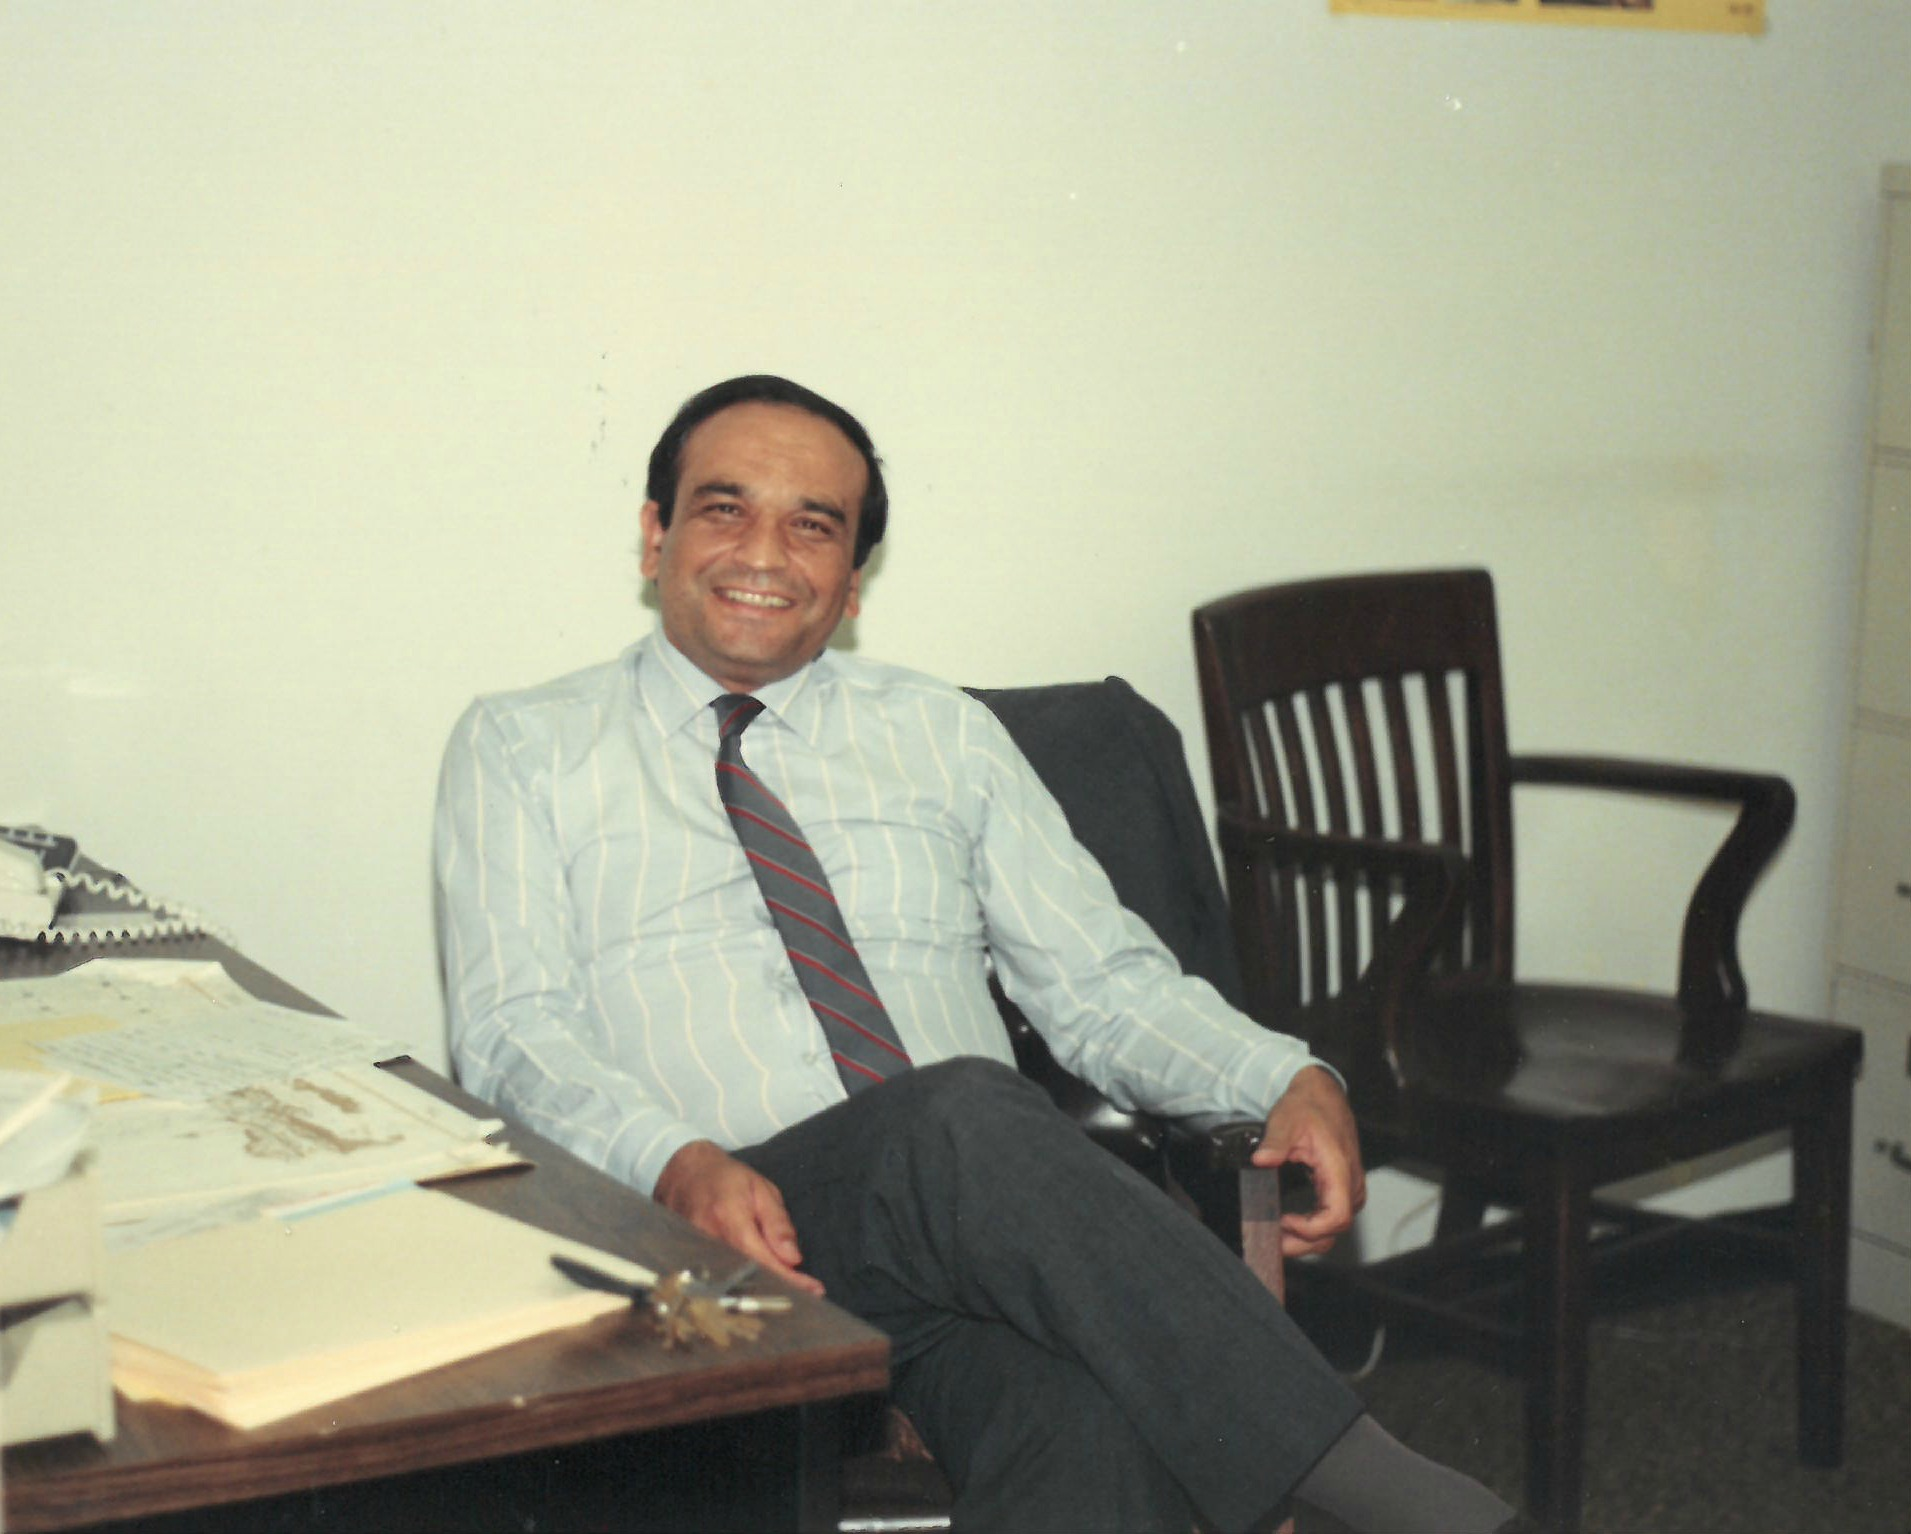 OBAID RASOUL STARTED WORKING AS A JOB COUNSELOR WITH LSG IN 1983. OVER THE YEARS, HE HAS HELPED MANY REFUGEES FIND THEIR FIRST JOB.